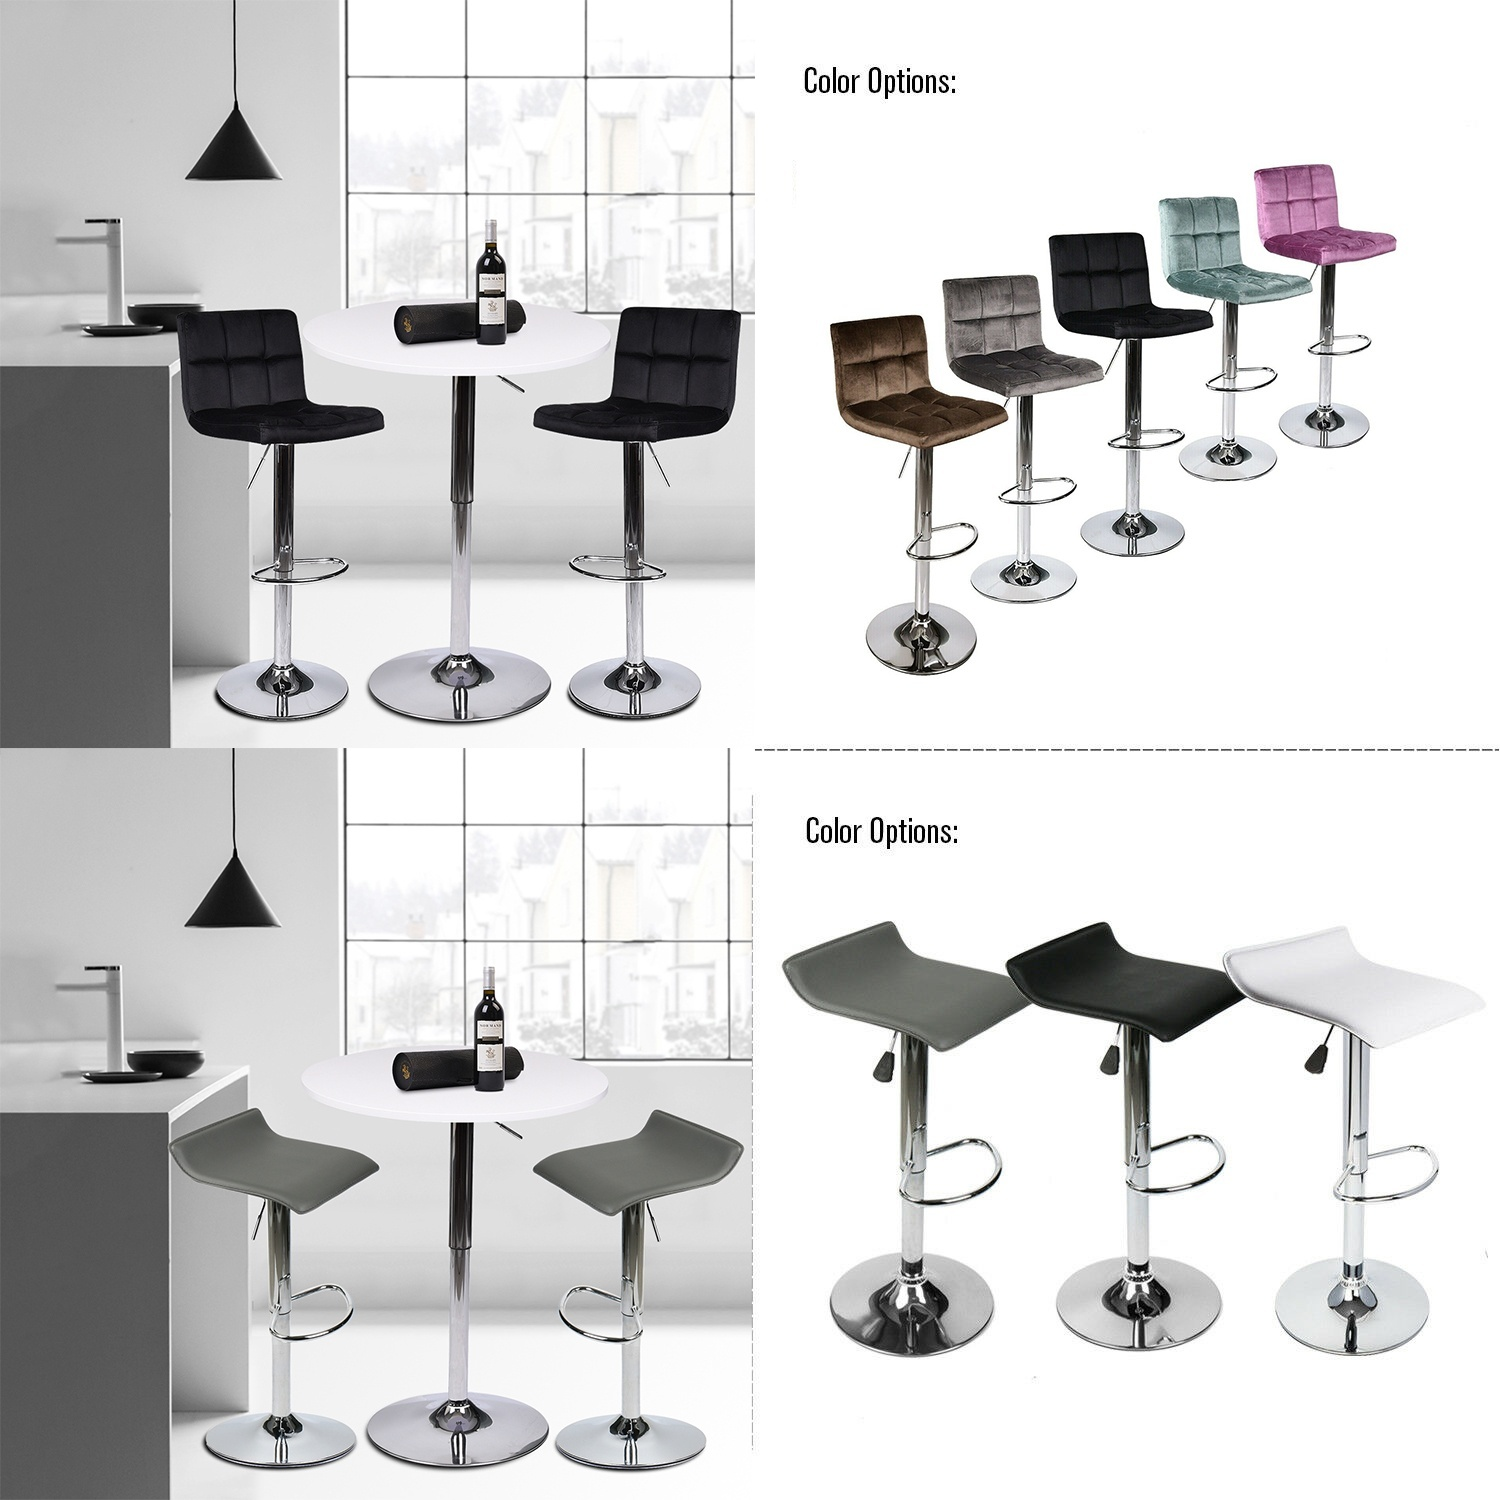 3-Piece Set Bar Stools Table PU Leather Velvent Cushion Chair Adjustable Swivel Counter Pub Dining